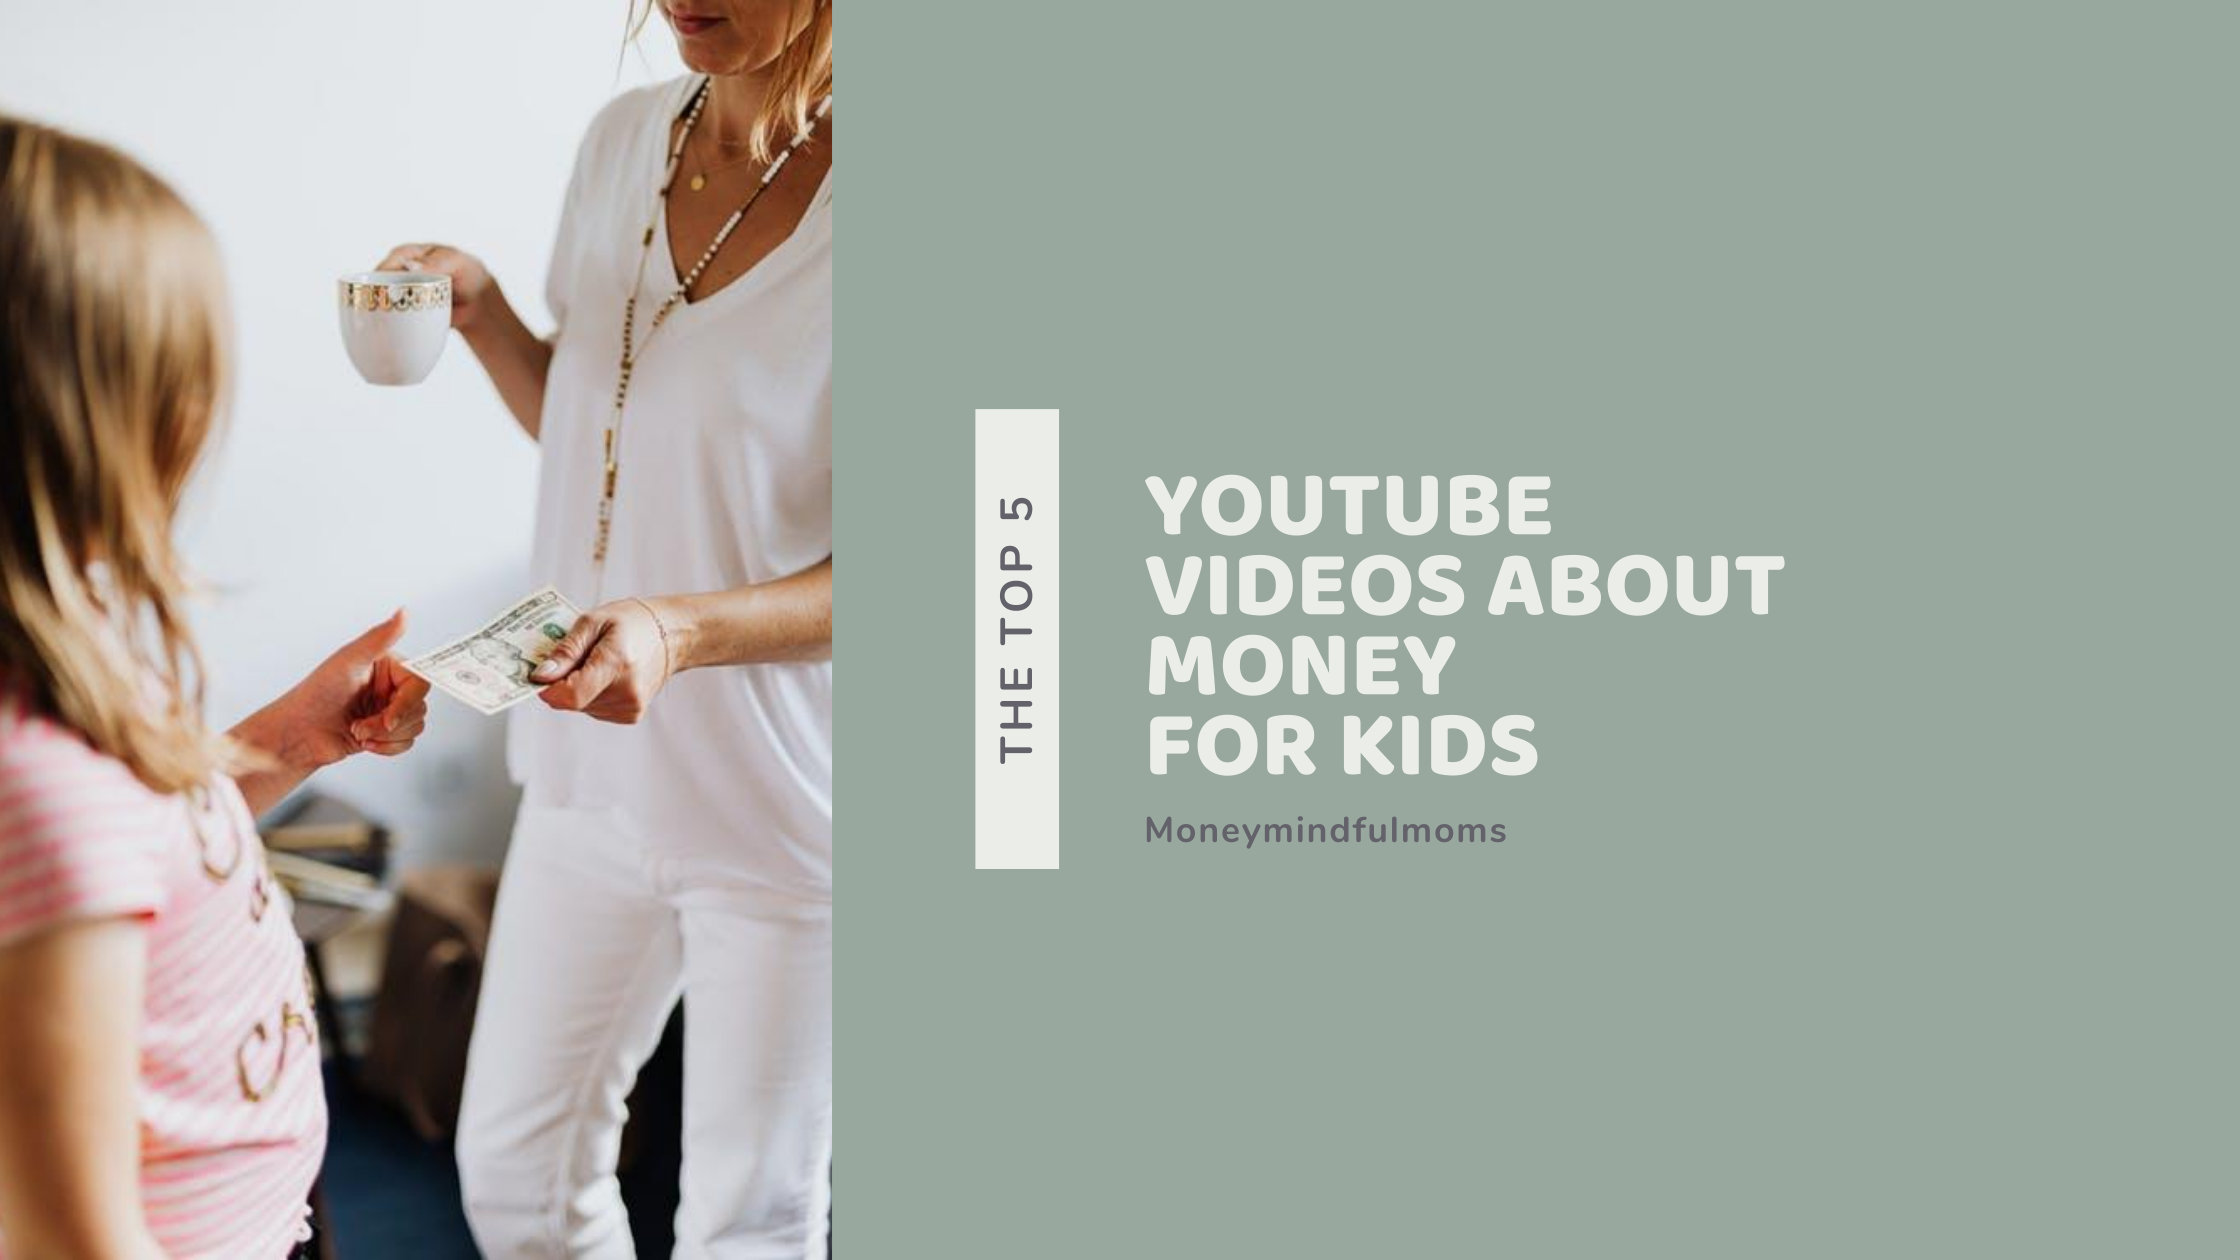 The top 5 YouTube videos about money for kids